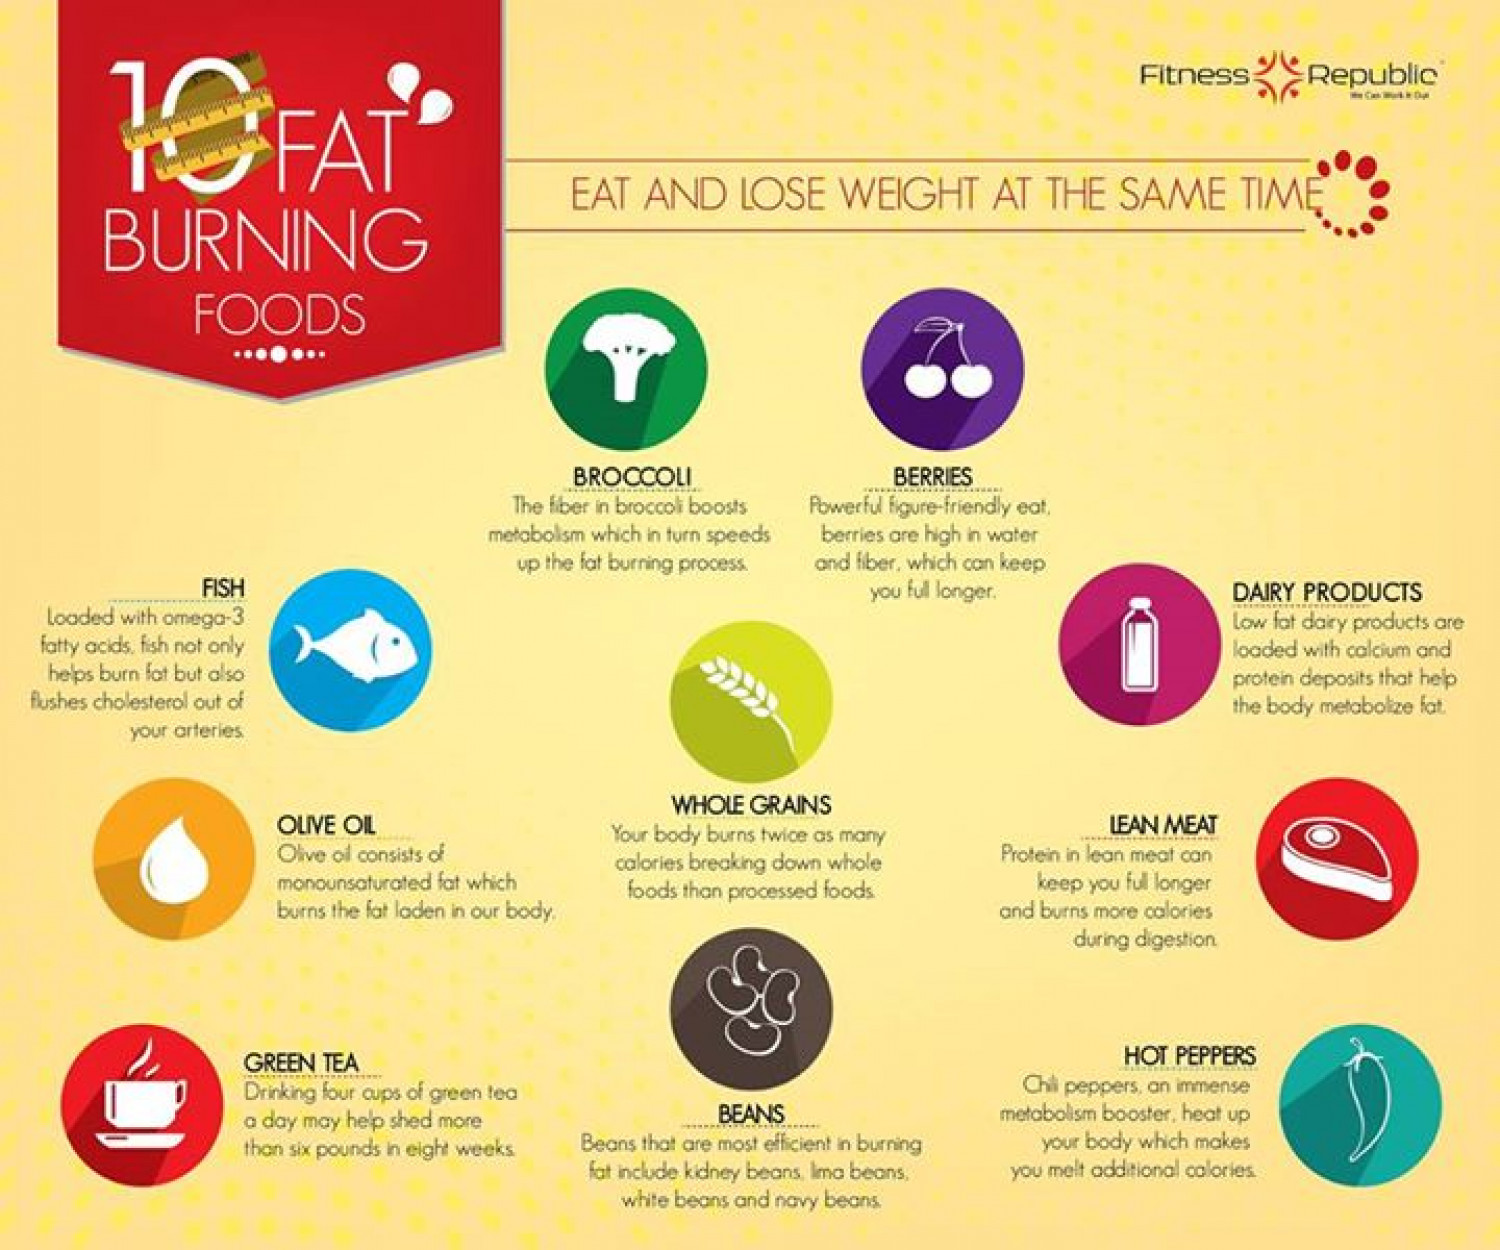 Top Belly Fat Burning Foods Best For Men And Women | Fat Burning HQ